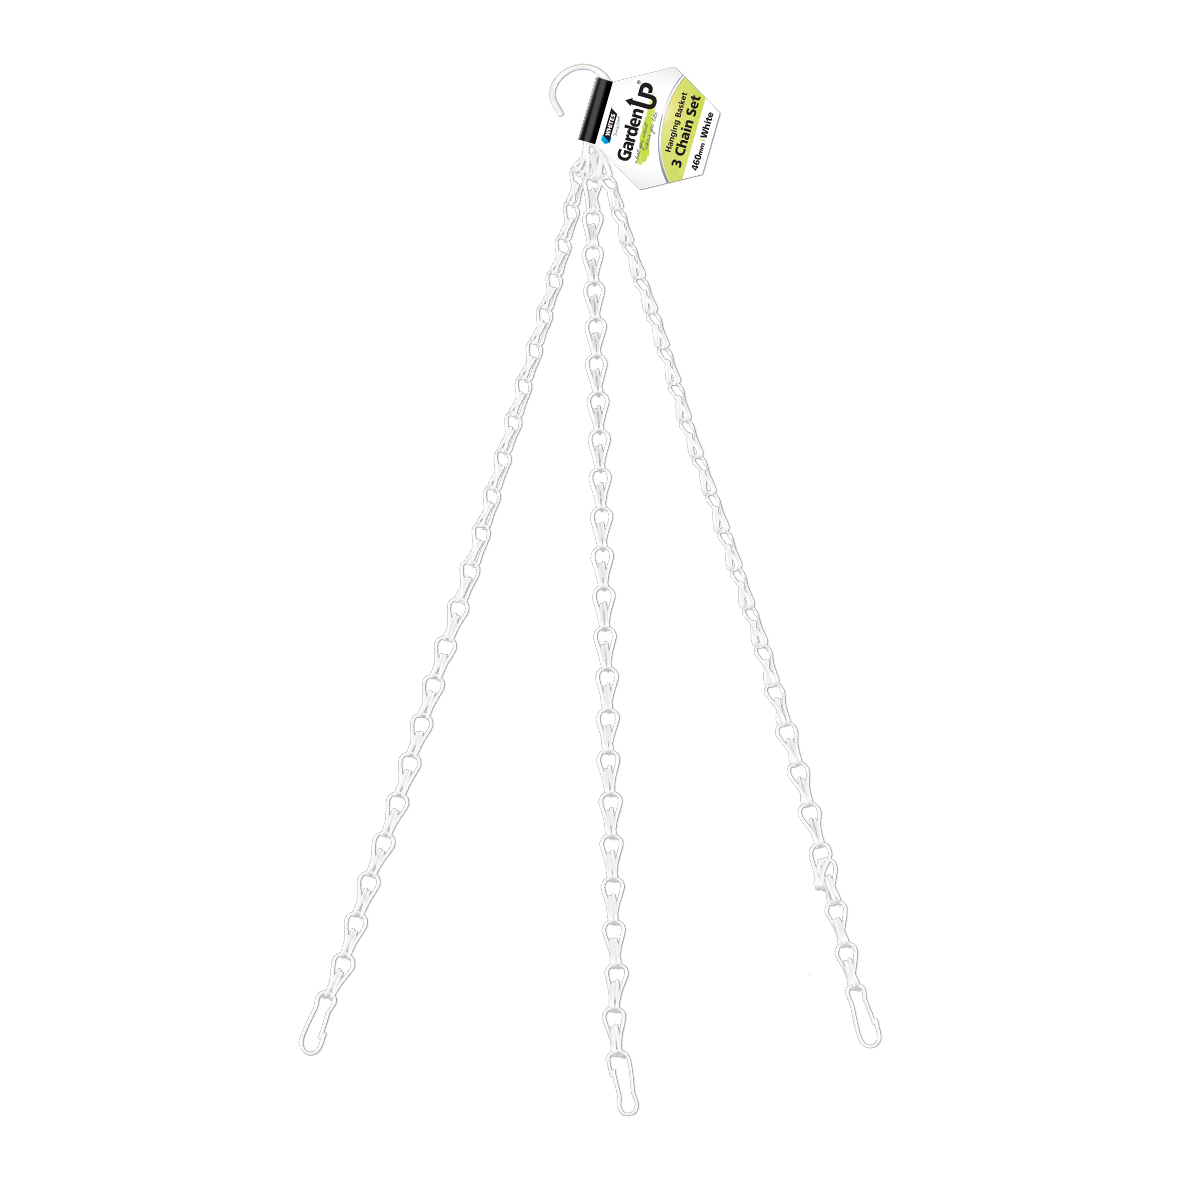 18189 Hanging Basket Chain Set 460mm White